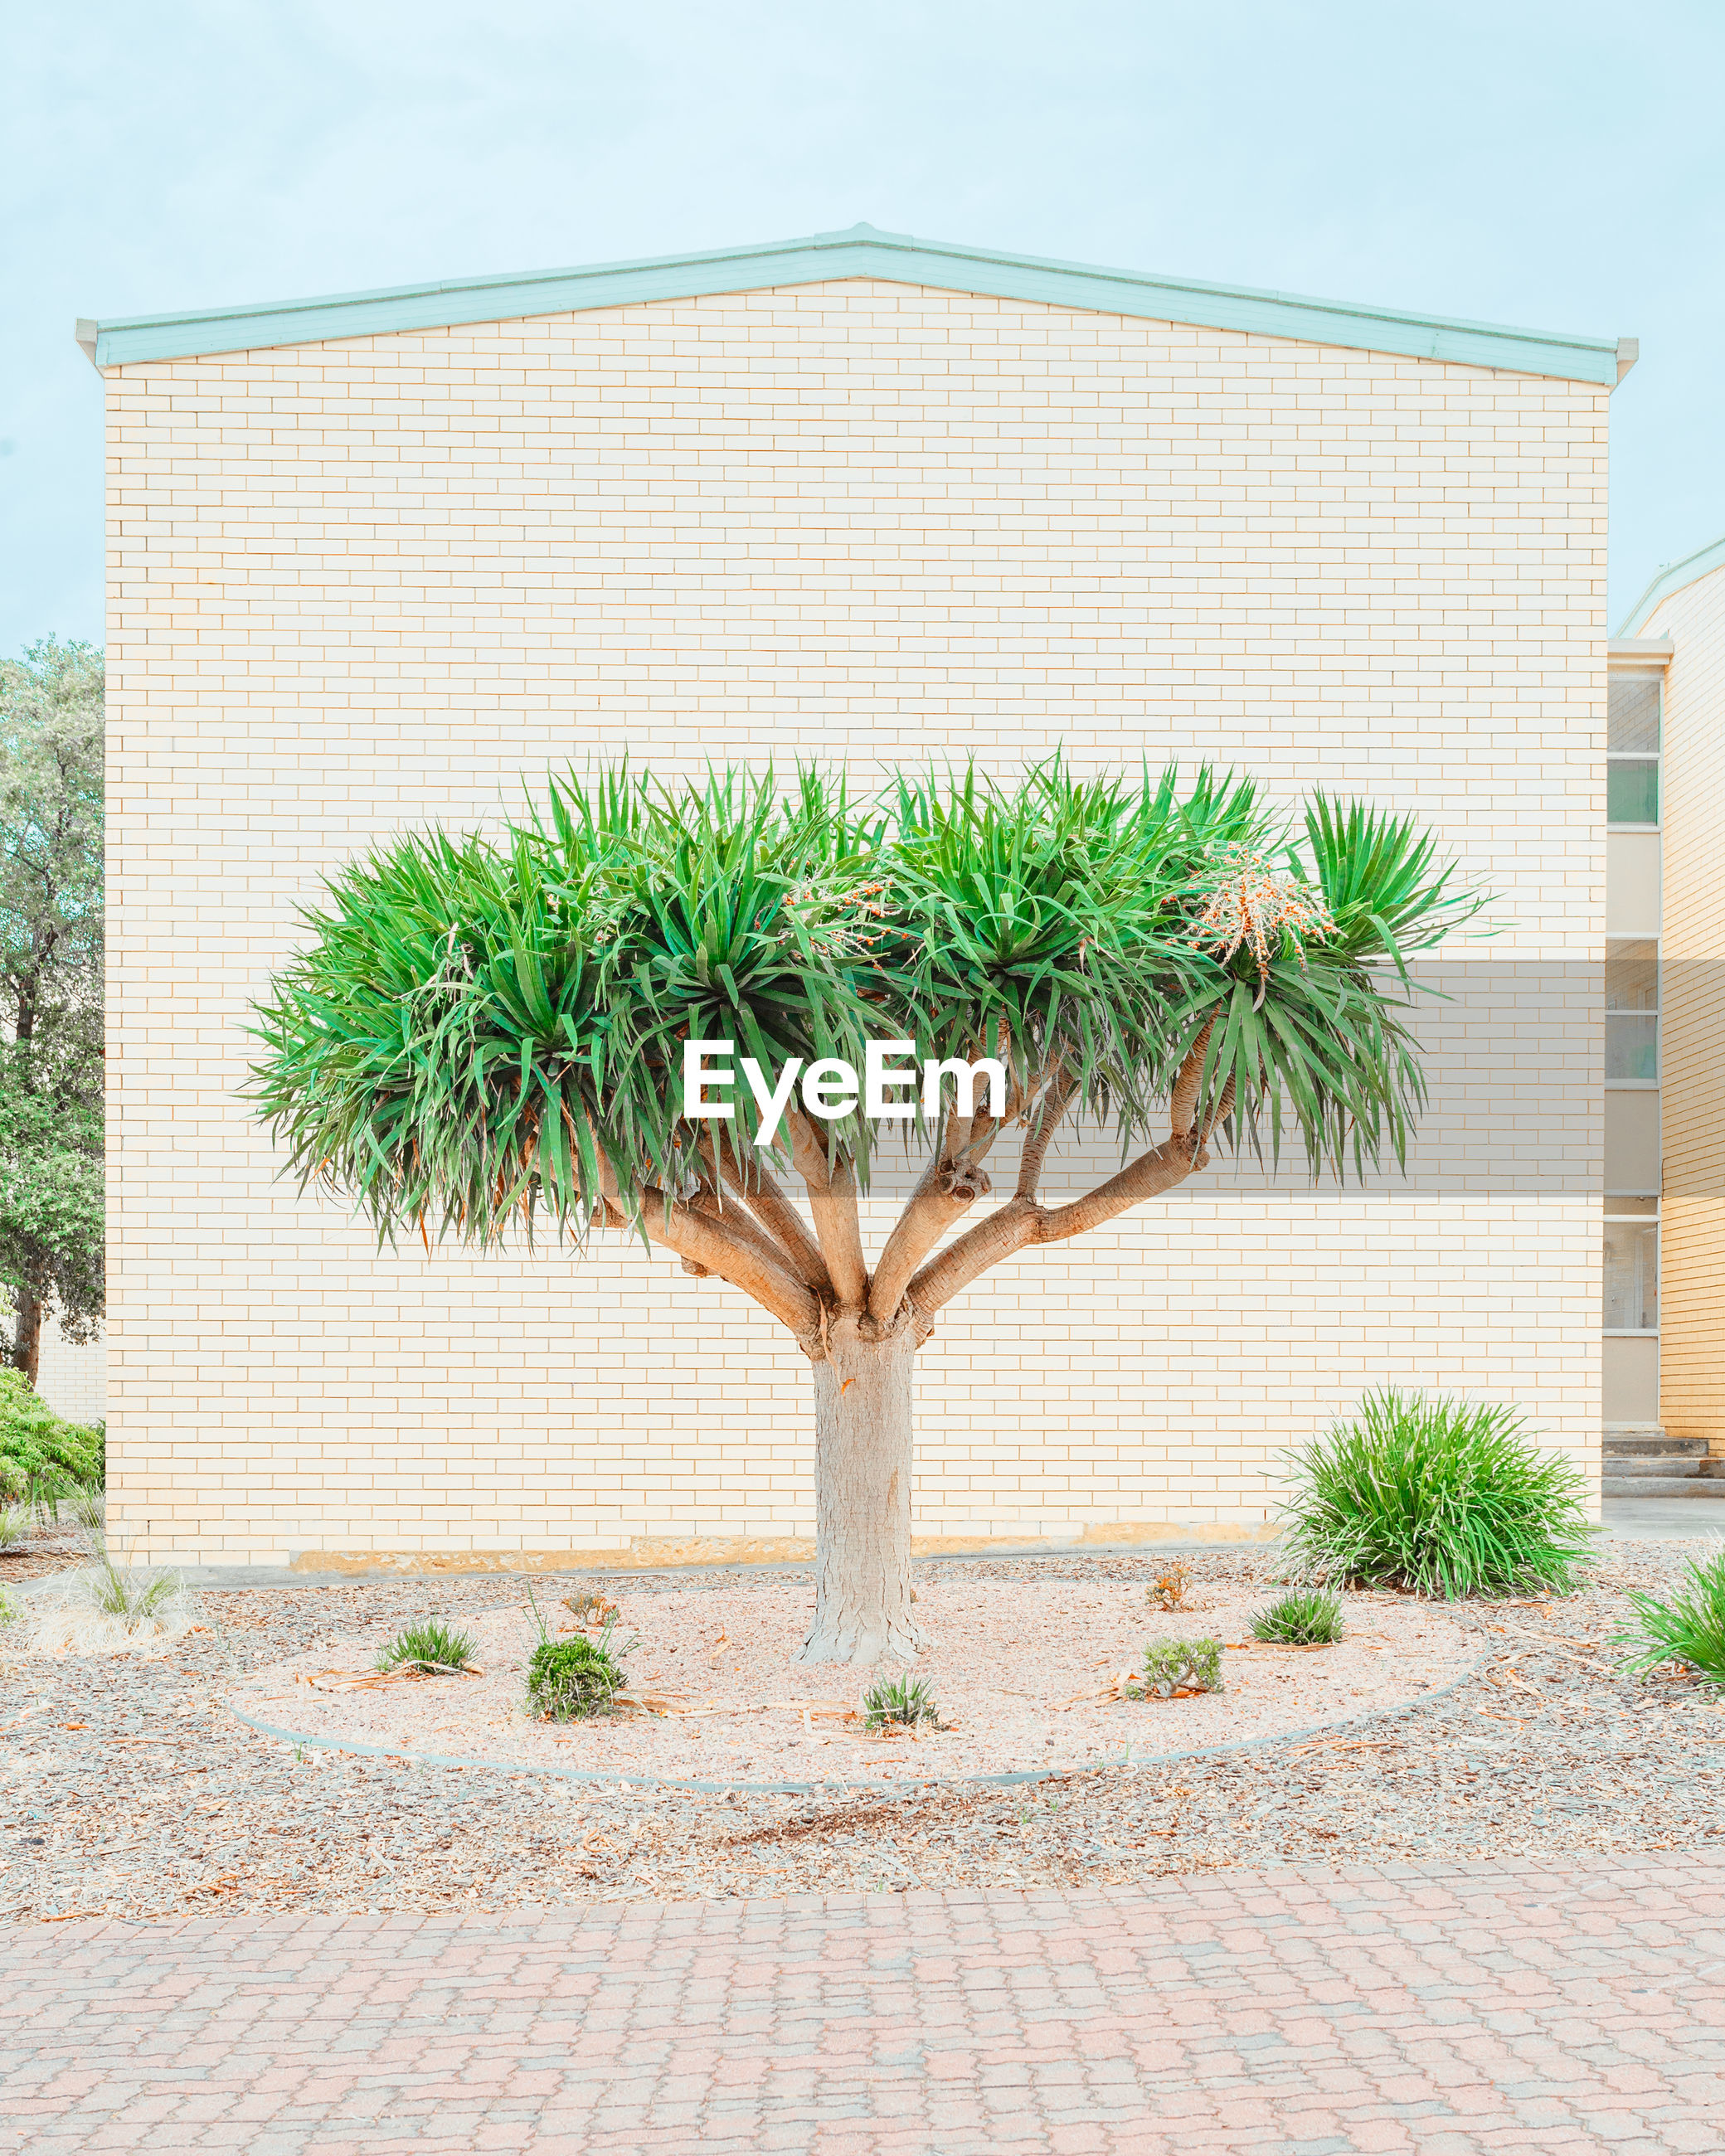 plant, nature, growth, day, no people, tree, green color, architecture, outdoors, land, built structure, building exterior, tranquility, footpath, beauty in nature, palm tree, cobblestone, wall, sky, tranquil scene, arid climate